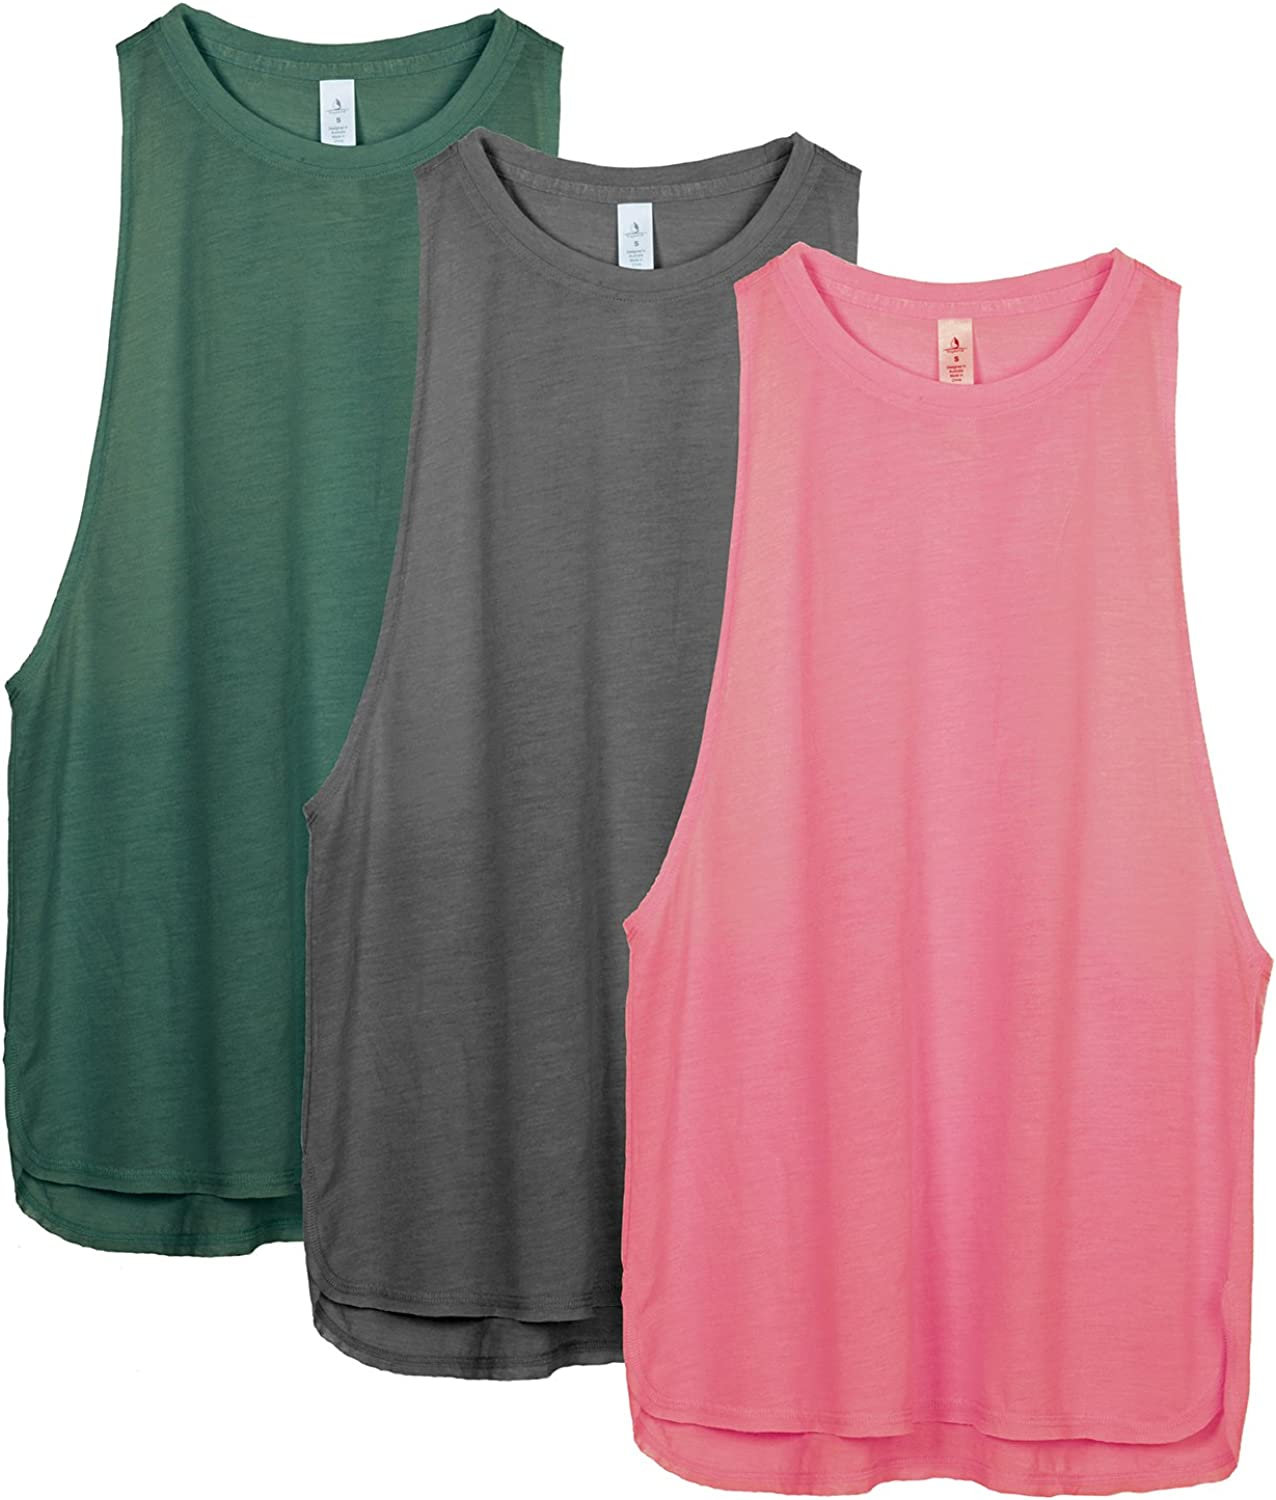 icyzone Workout Tank Tops for Women - Running Muscle Tank Sport Exercise Gym Yoga Tops Running Muscle Tanks(Pack of 3)